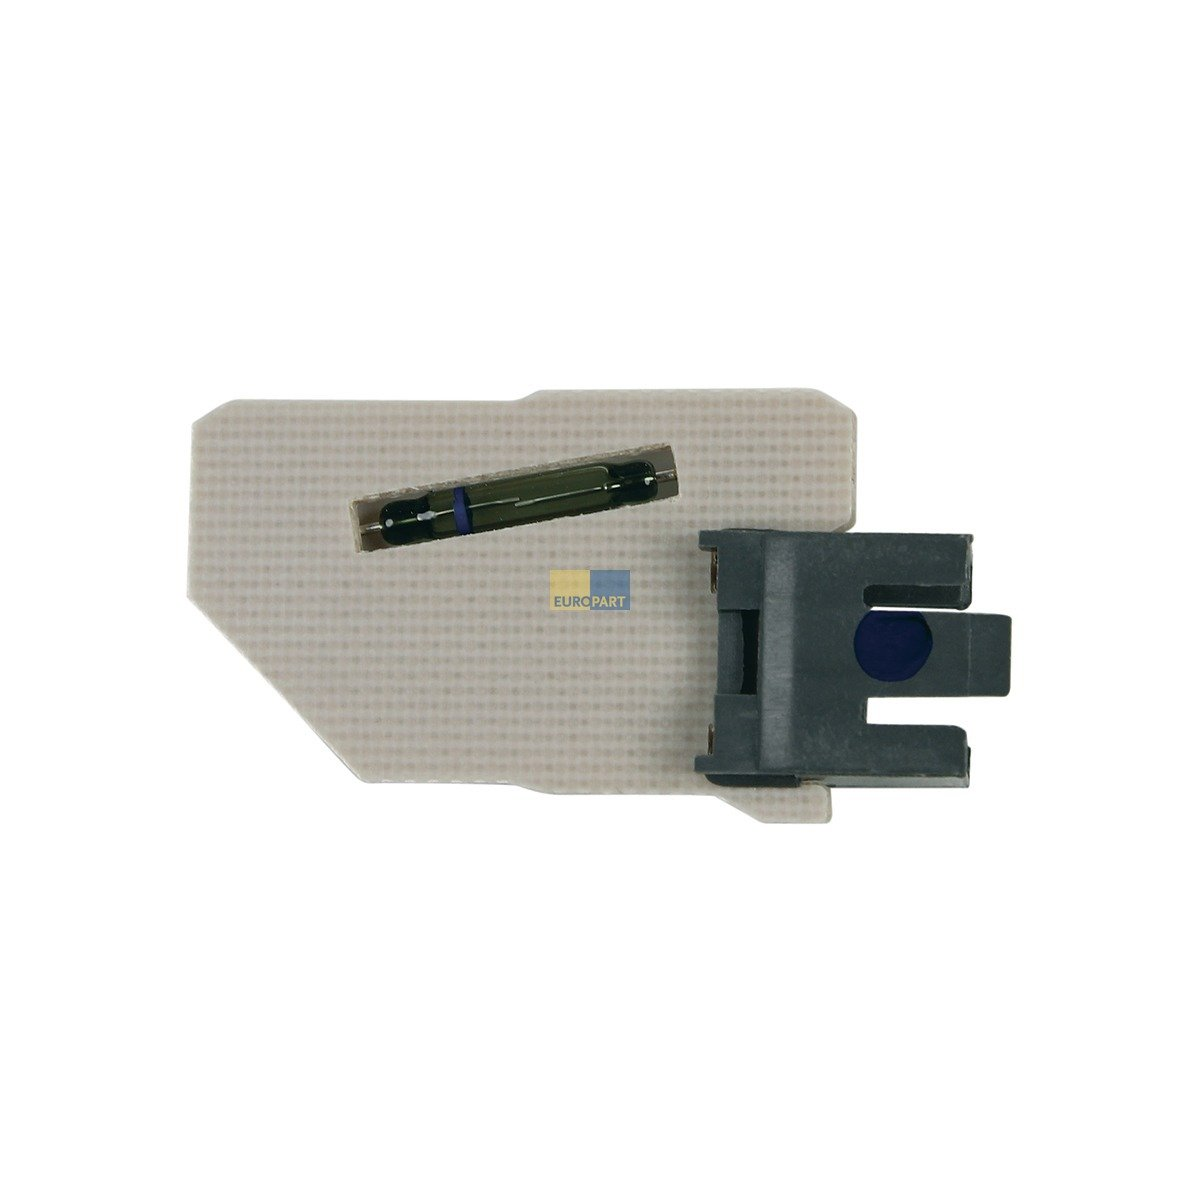 Sourcingmap a13072900ux0584/100/W 50/Ohm Variable Widerstand Draht Wunde Rheostat/ /Mehrfarbig